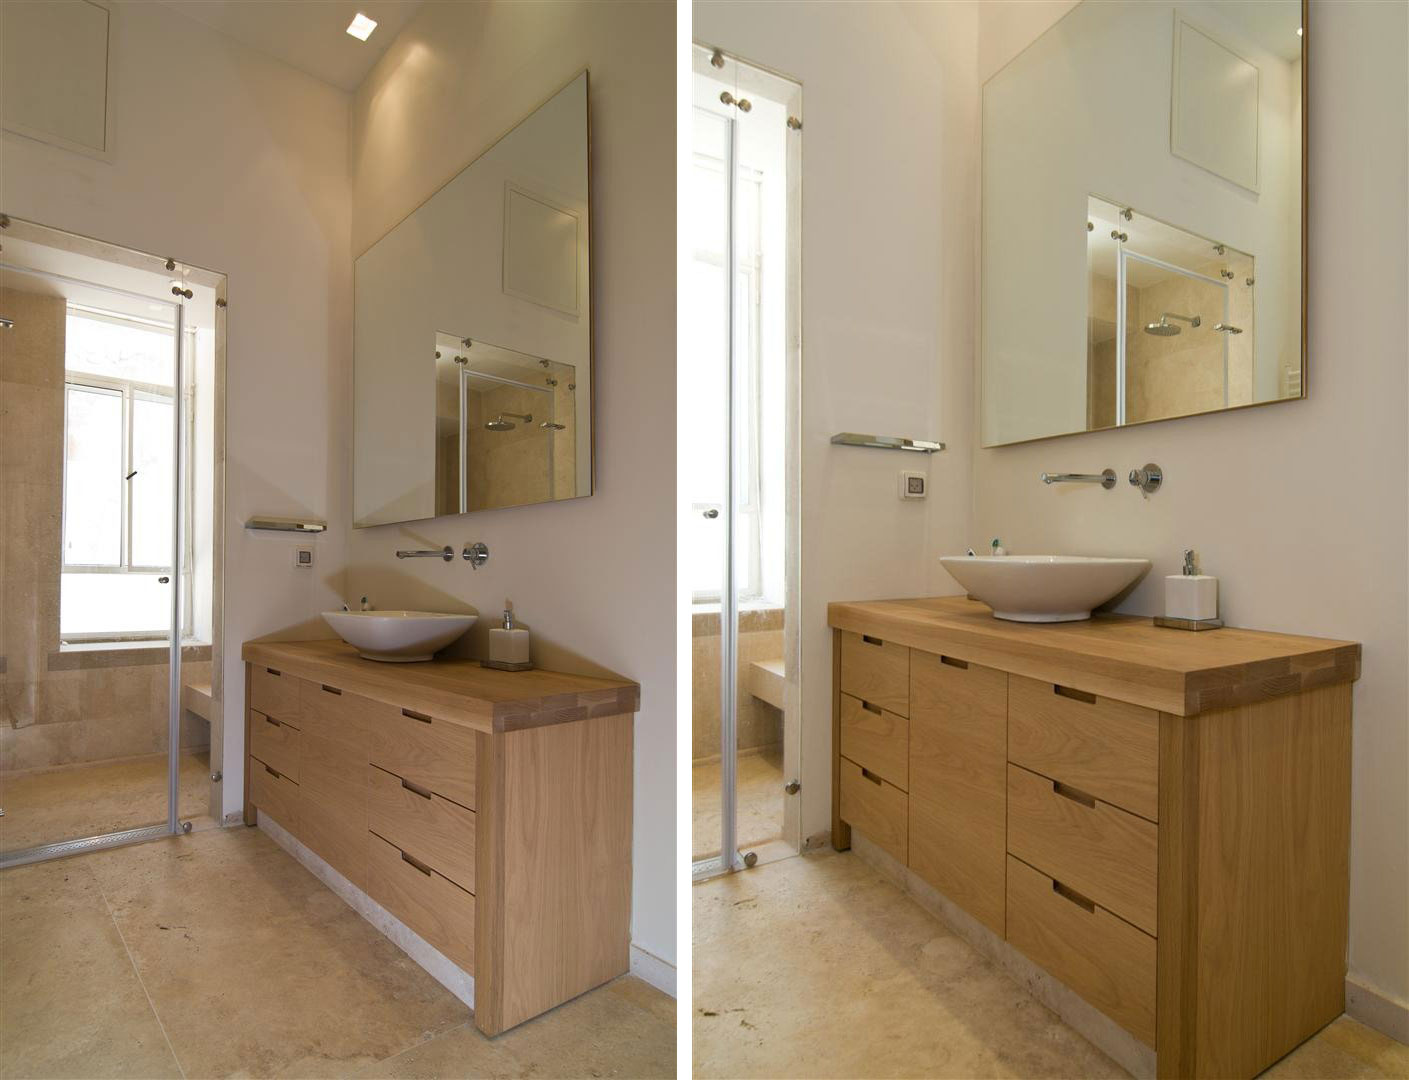 Bathroom, Sink, Mirror, Contemporary Stone House in Jerusalem, Israel